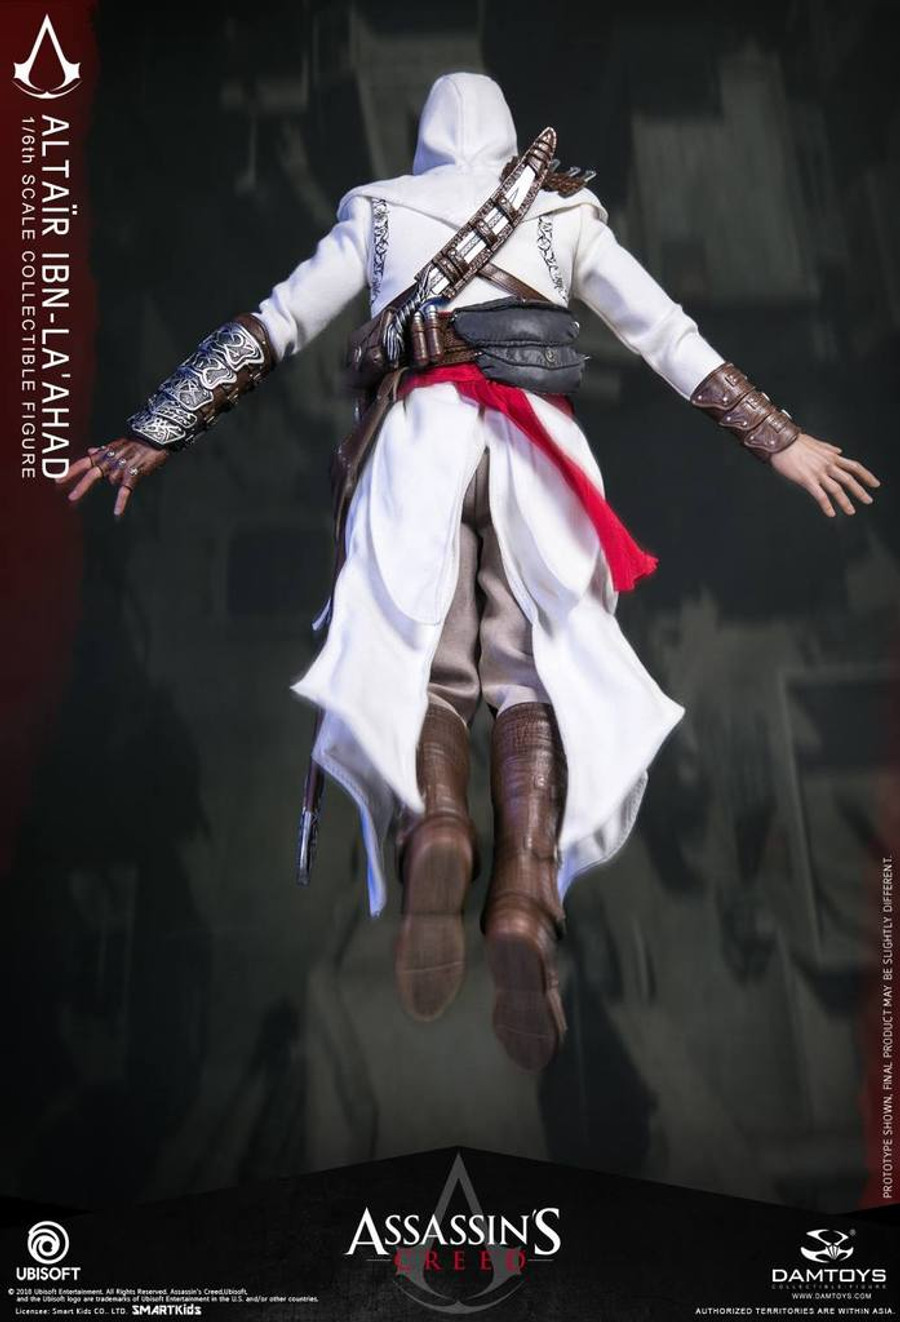 DAM Toys - Assassin's Creed: Altaïr the Mentor